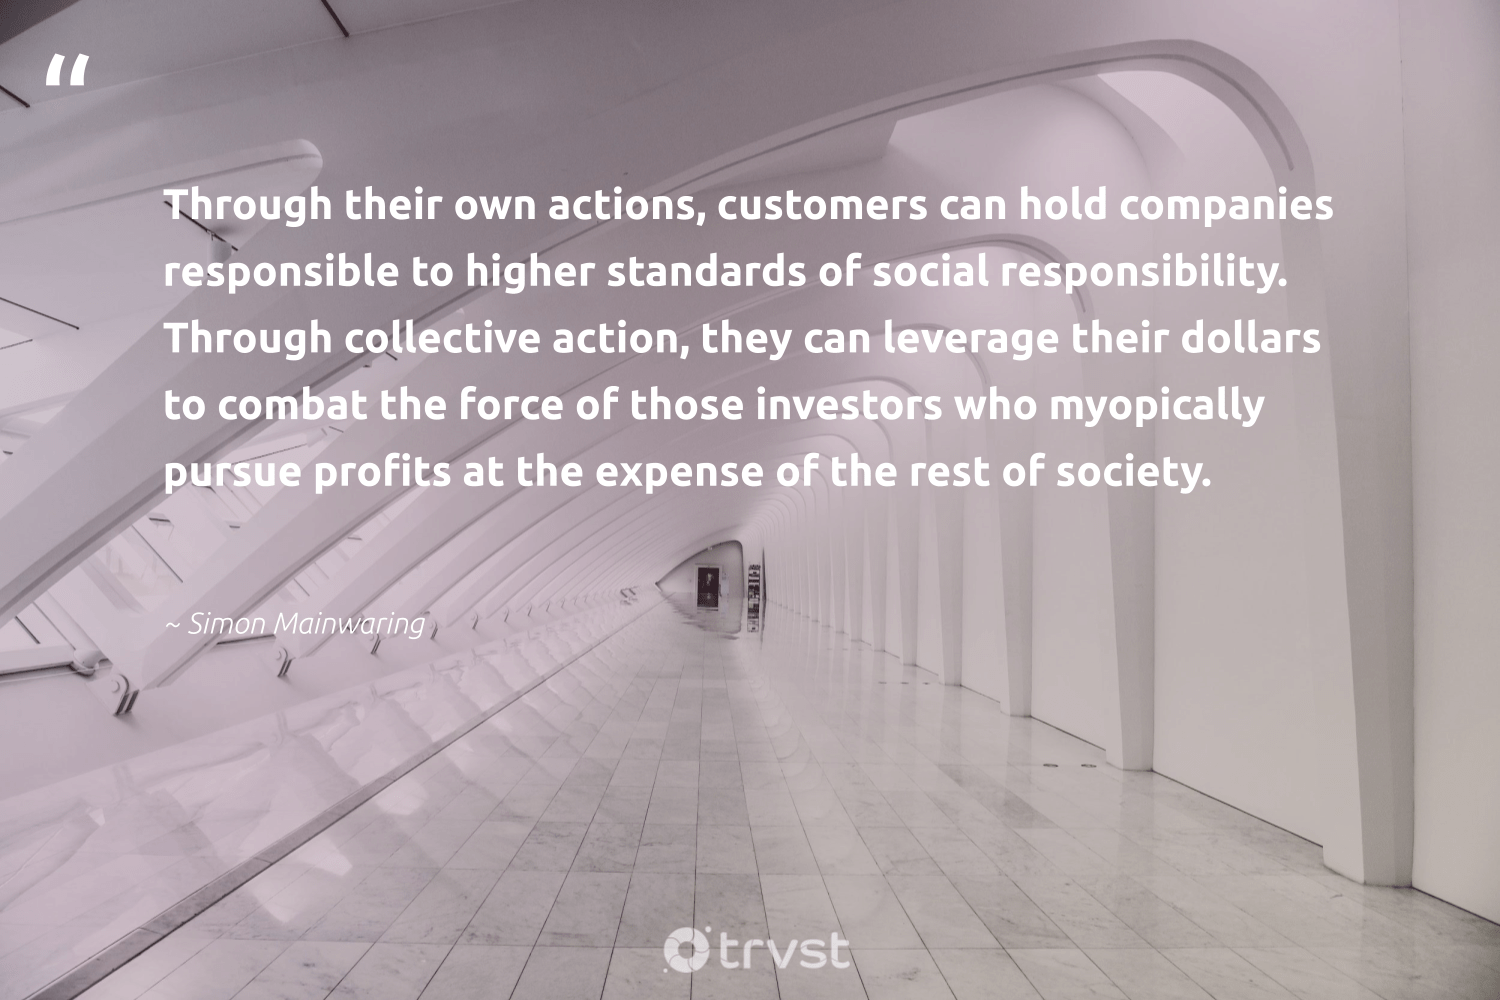 """""""Through their own actions, customers can hold companies responsible to higher standards of social responsibility. Through collective action, they can leverage their dollars to combat the force of those investors who myopically pursue profits at the expense of the rest of society.""""  - Simon Mainwaring #trvst #quotes #collectiveaction #society #customers #dogood #socialchange #weareallone #socialimpact #sharedresponsibility #dosomething #ethicalbusiness"""